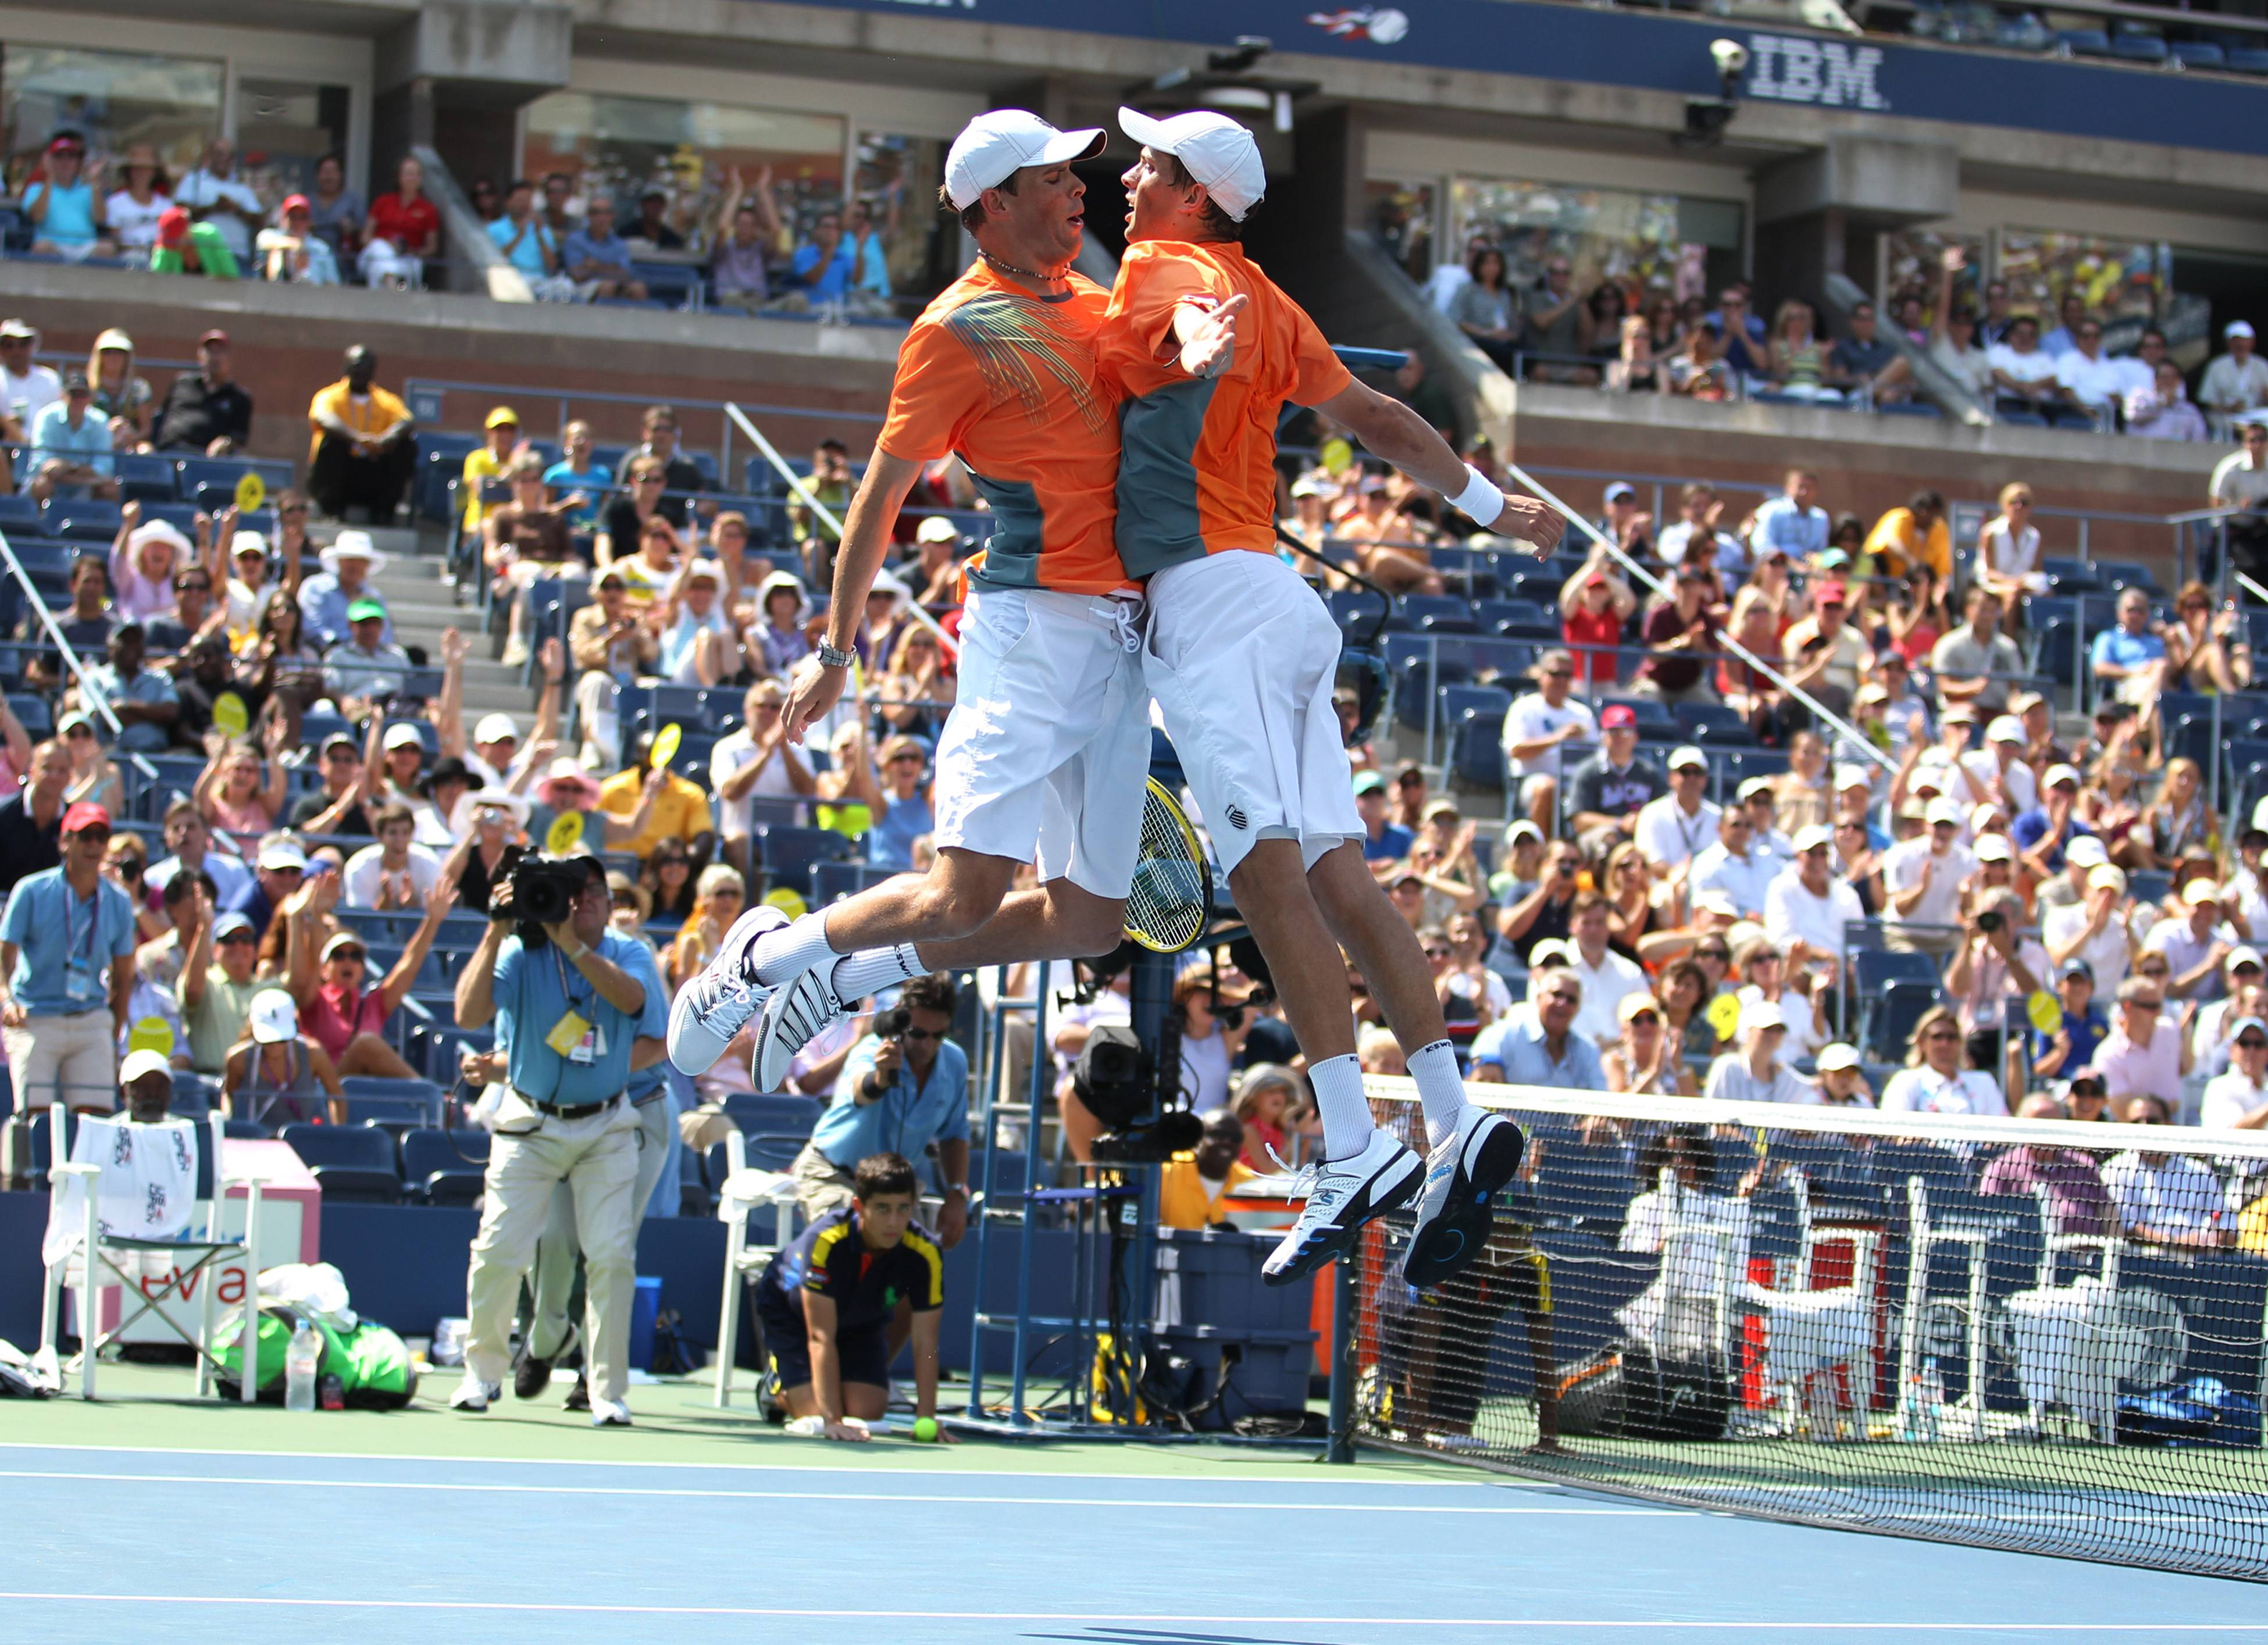 Mike and Bob Bryan Celebrate with their Signature Chest Bump